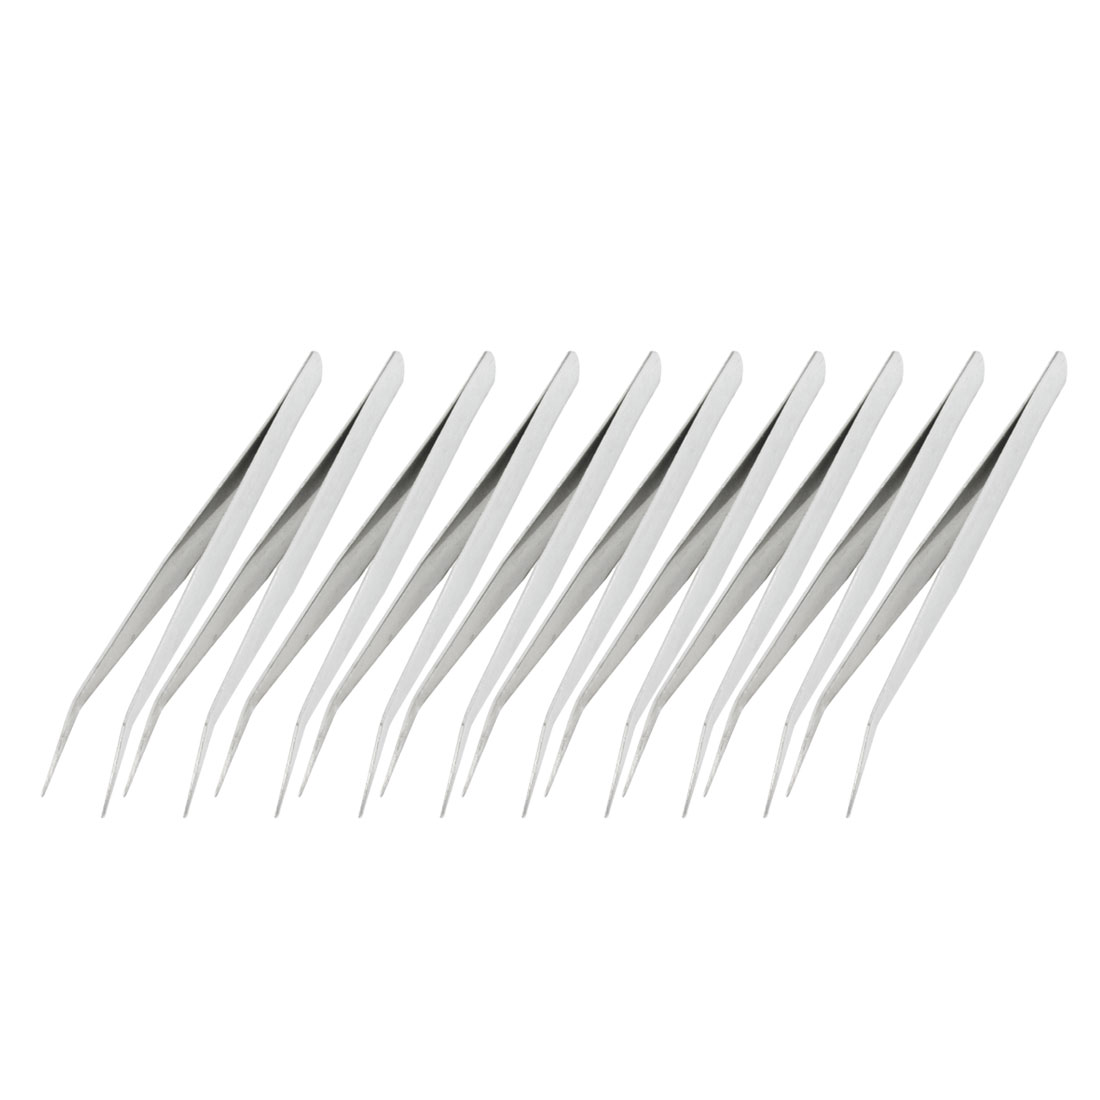 10 Pcs Silver Tone Stainless Steel Curved Tweezers 13.5cm Length